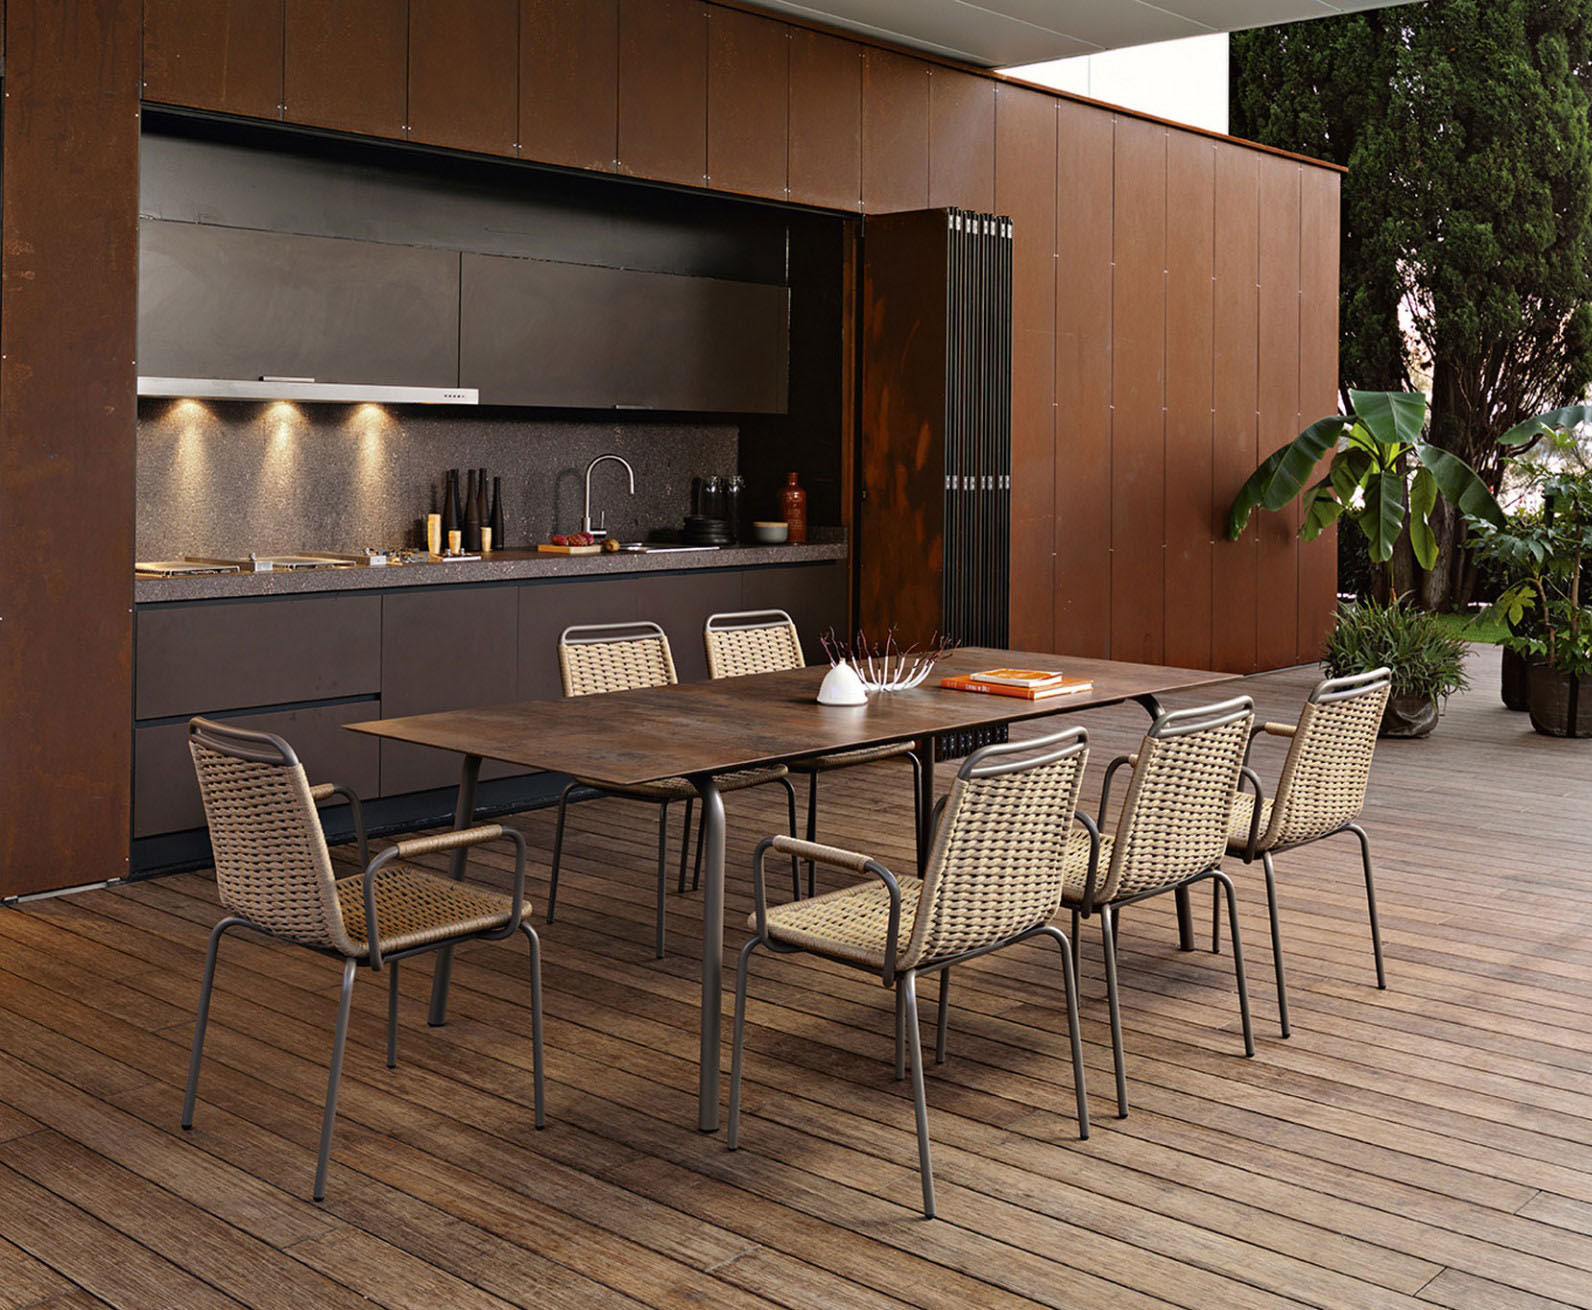 dinning set for outdoor use, outdoor wooden table with chairs, walnut table for outdoor use, high resistance to sun and water outdoor table, dinning set, trapezi me karekles gia exoteriko xoro, karekles me trapezi megalo exoterikou xorou